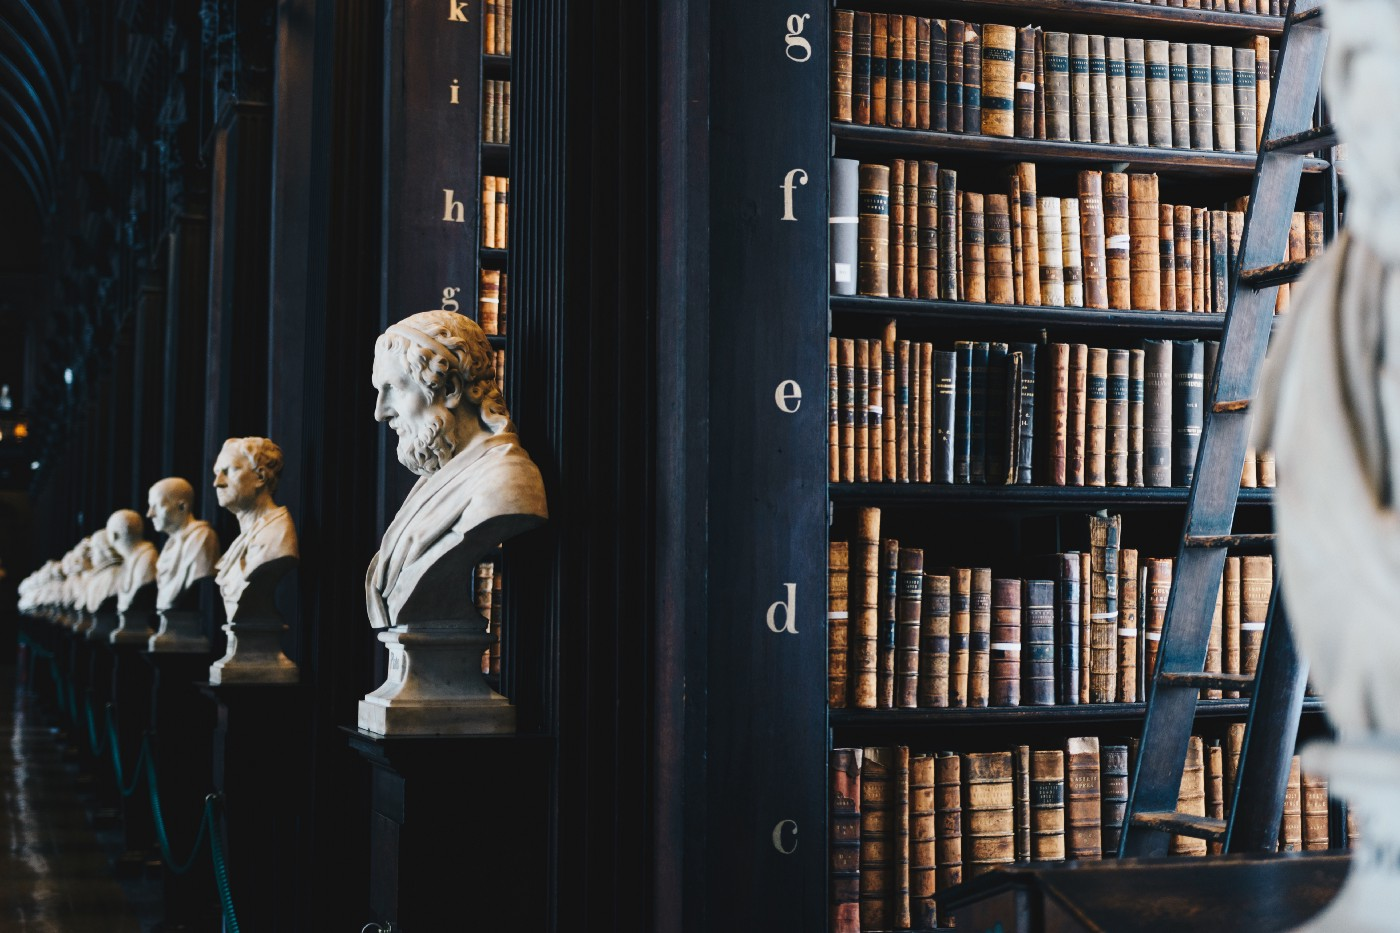 A library hallway with marble busts at the end of each shelving unit